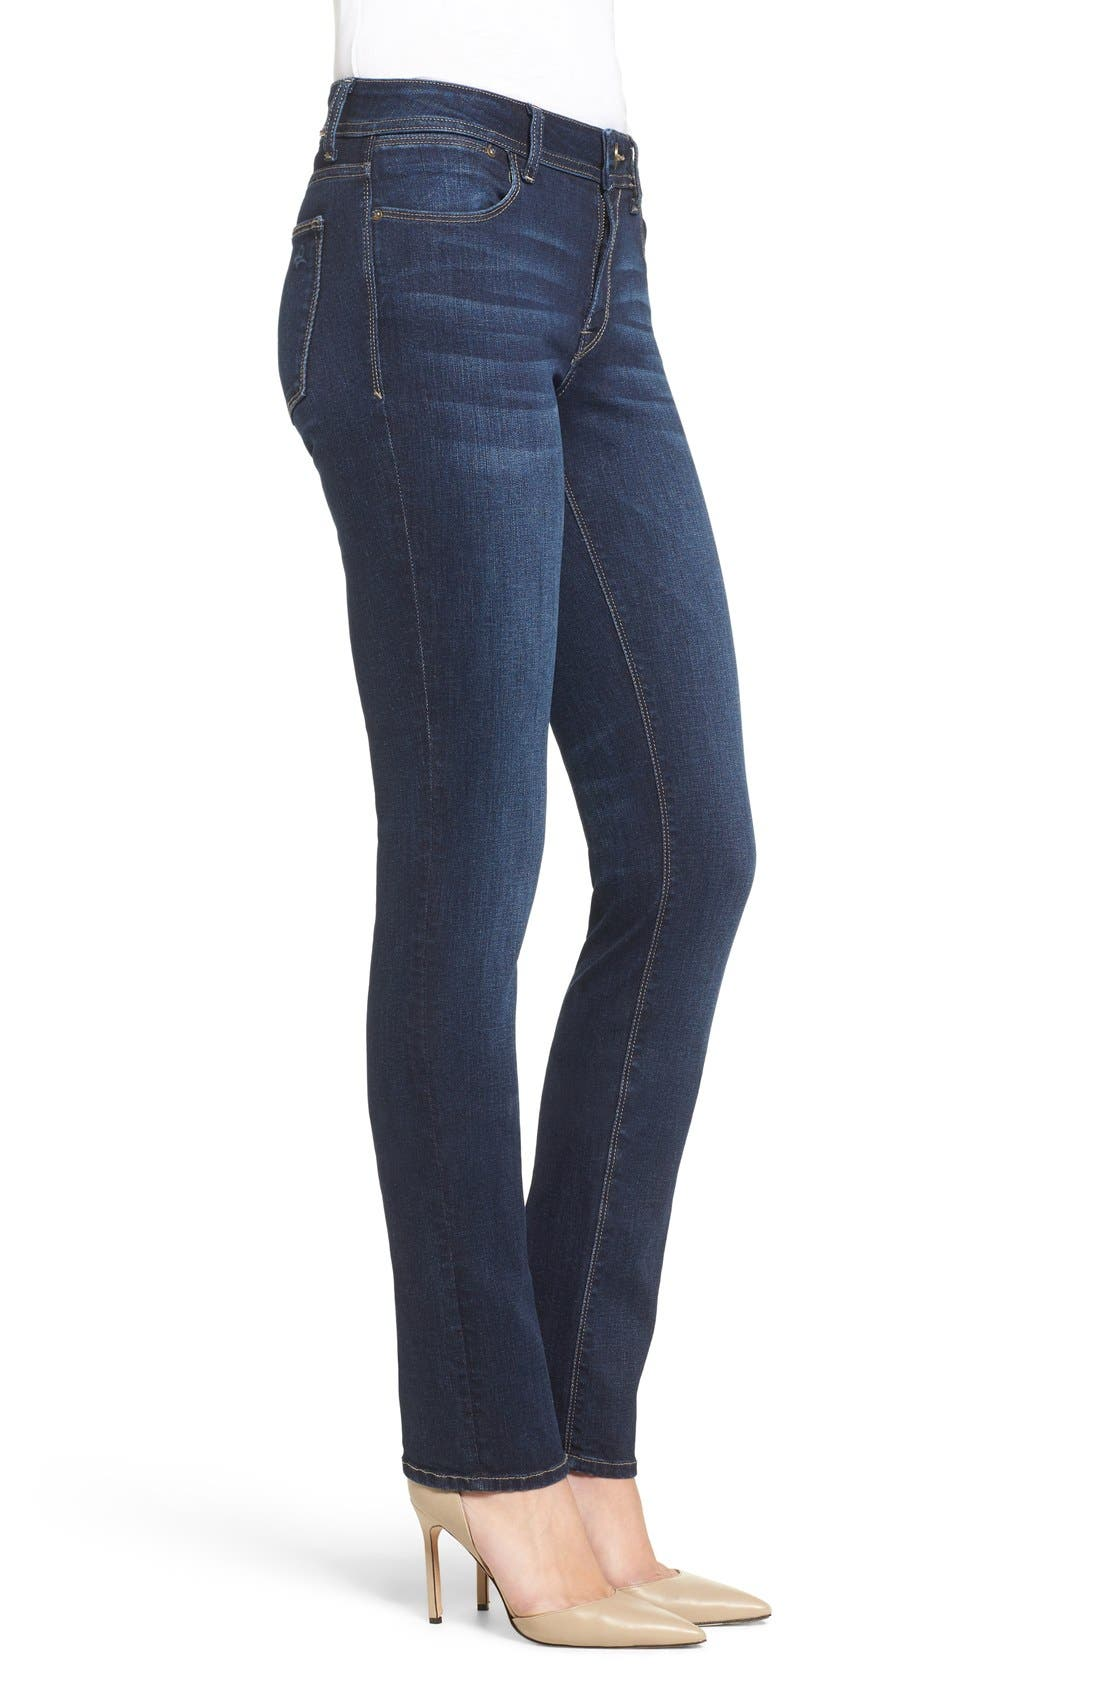 'Coco' Curvy Slim Straight Leg Jeans,                             Alternate thumbnail 8, color,